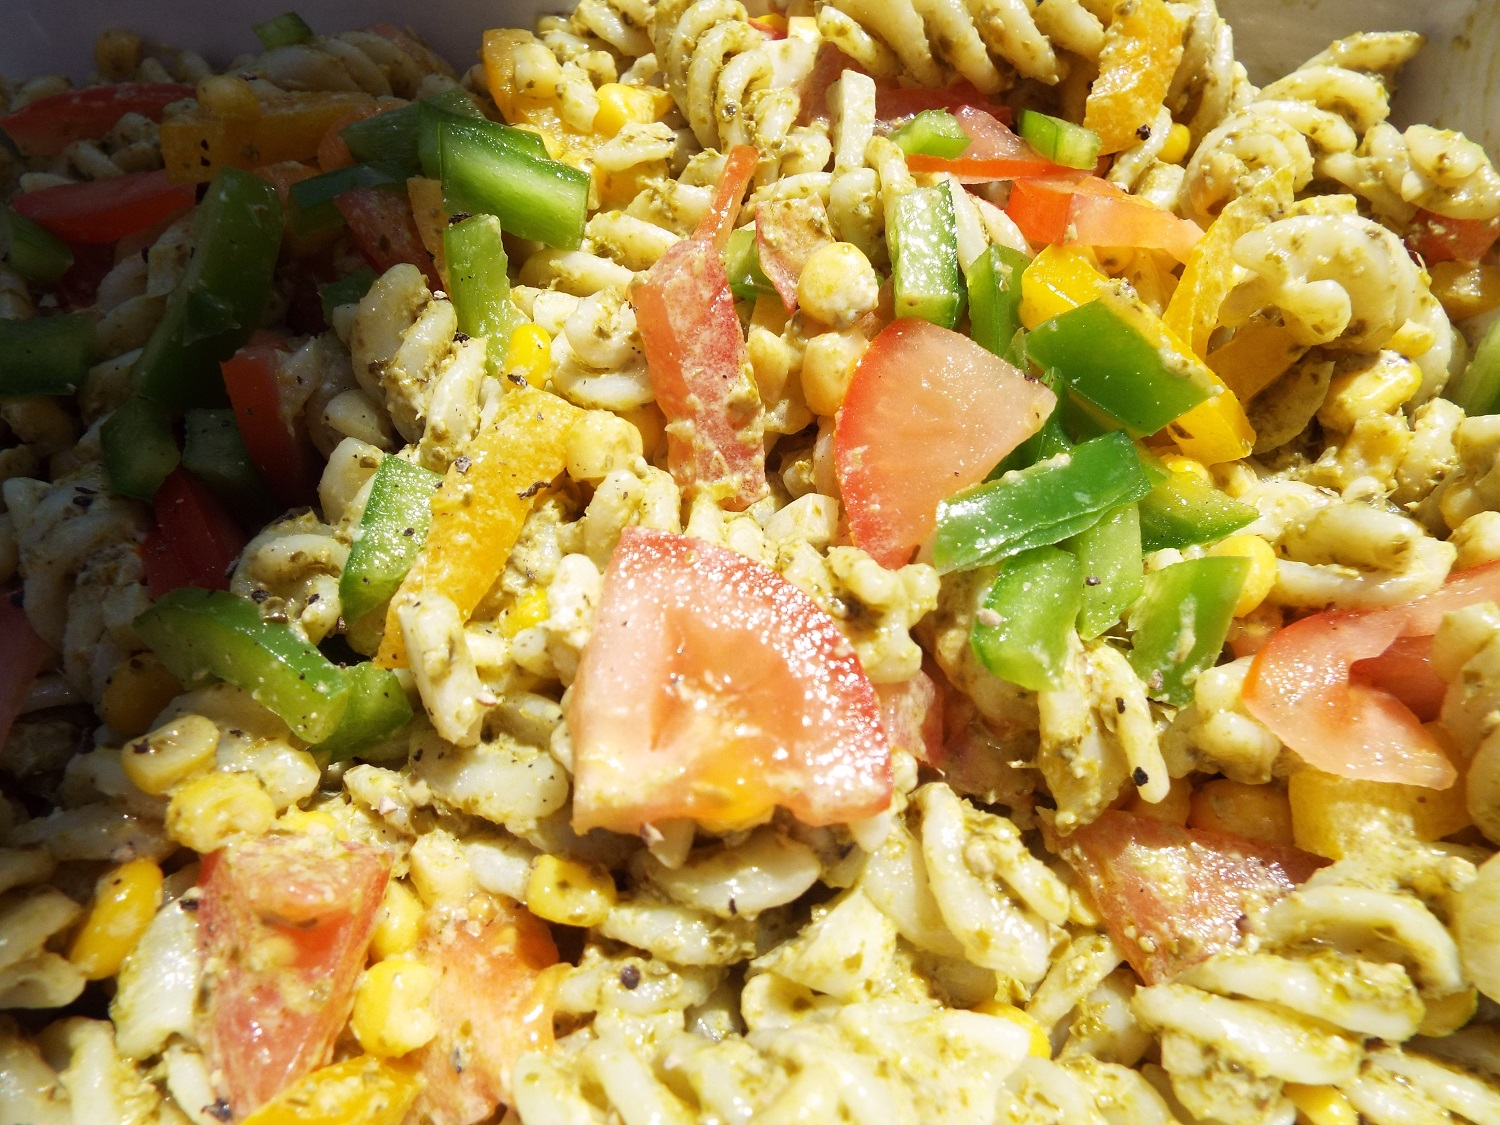 Pasta Salad Bowl - Cook pasta shapes, add a dressing like mayo or pesto, and seasoning.Add chopped salad vegetables - this bowl has tomatoes, onion, green peppers, yellow peppers and sweetcorn.